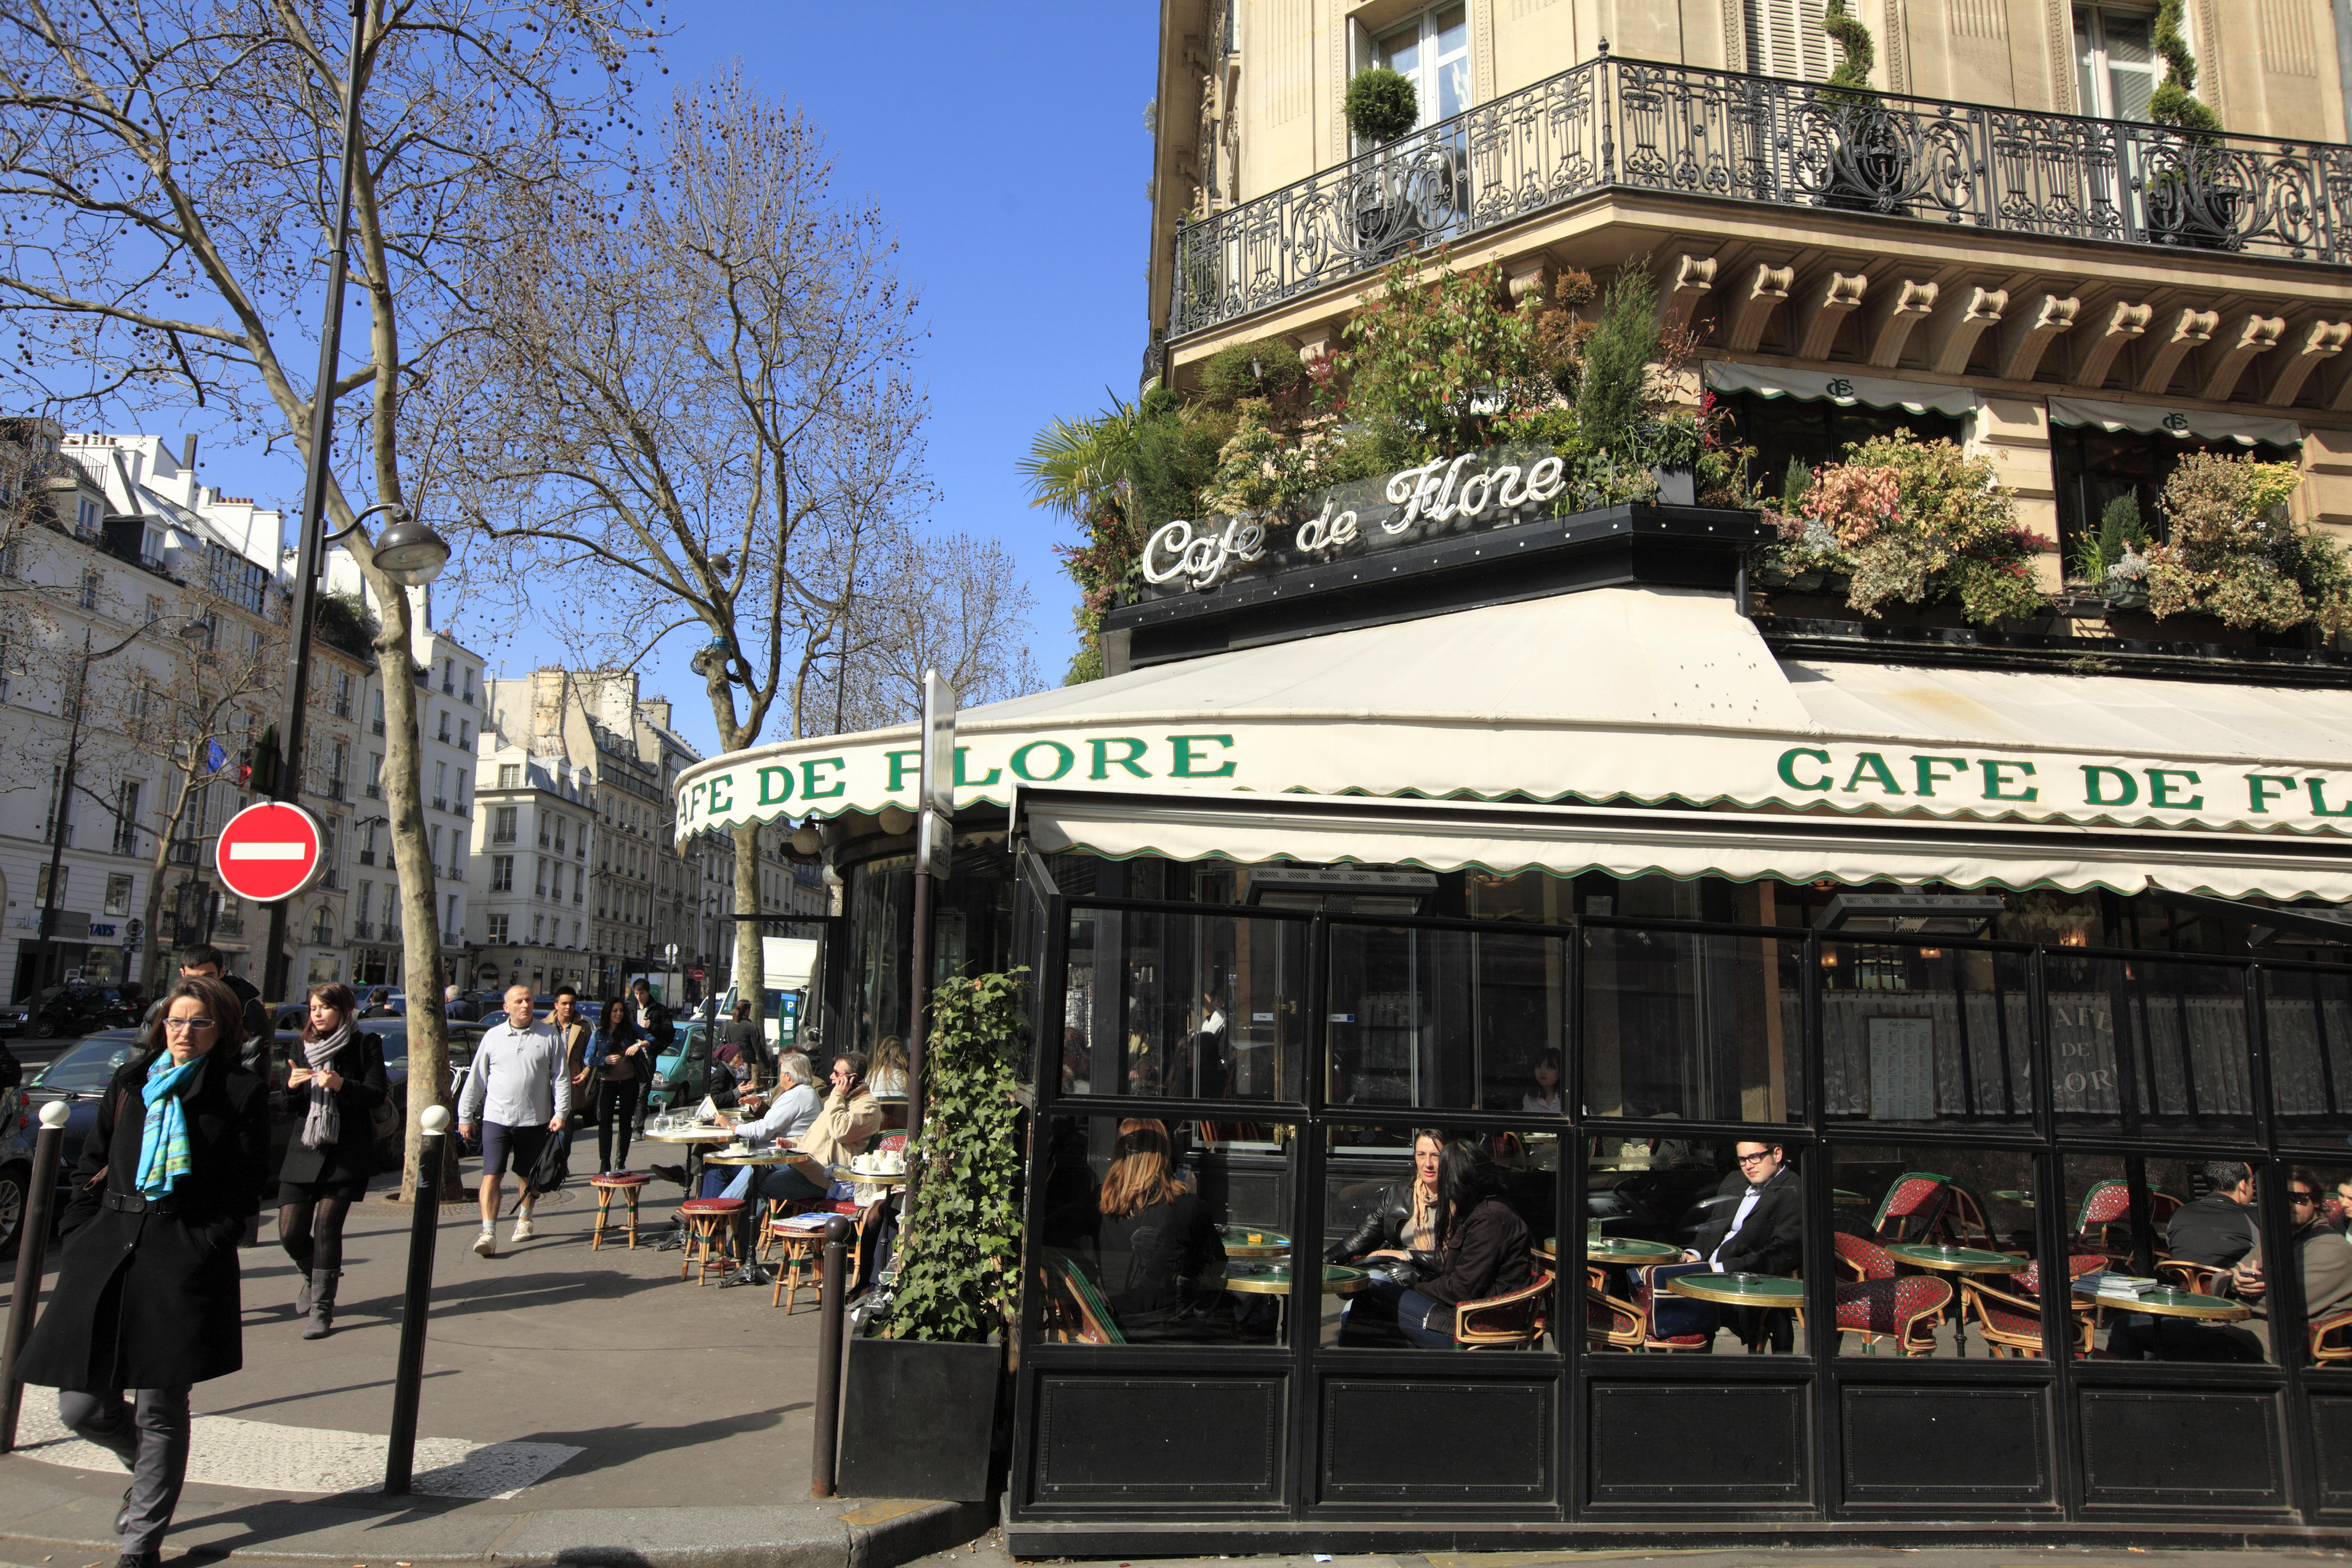 Cafe de Flore.Paris.France. Image shot 2016. Exact date unknown.